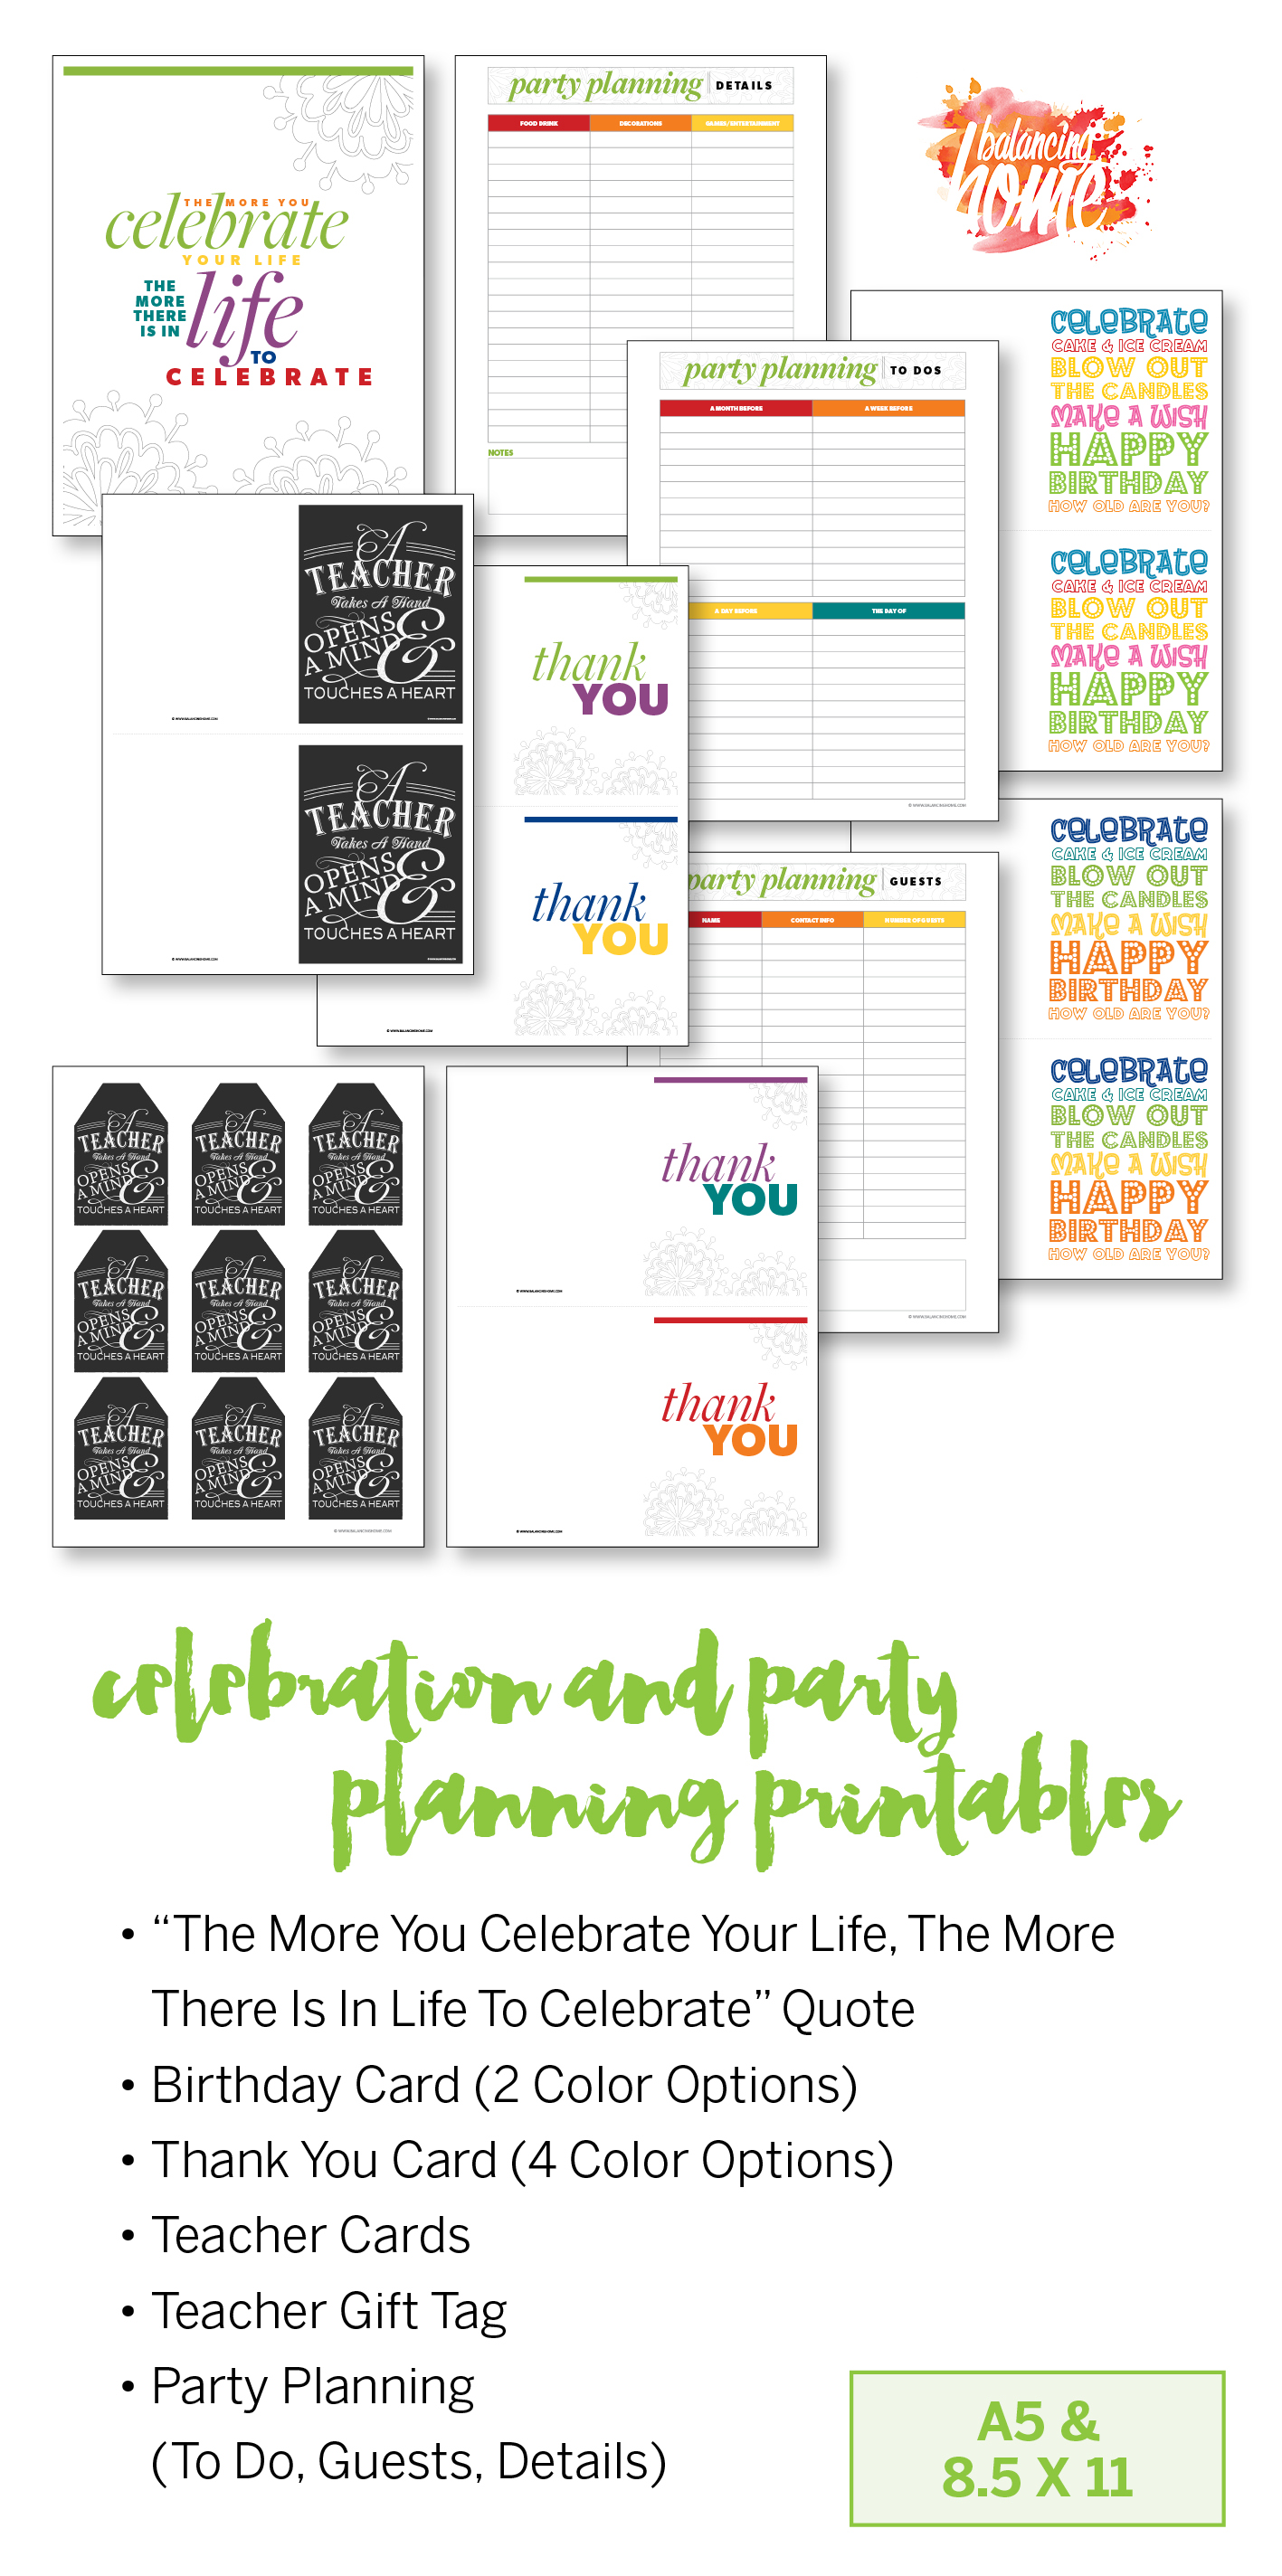 Celebrate! Party planning printables and birthday card printable (2 color options), thank you cards, teacher cards, teacher gift tags